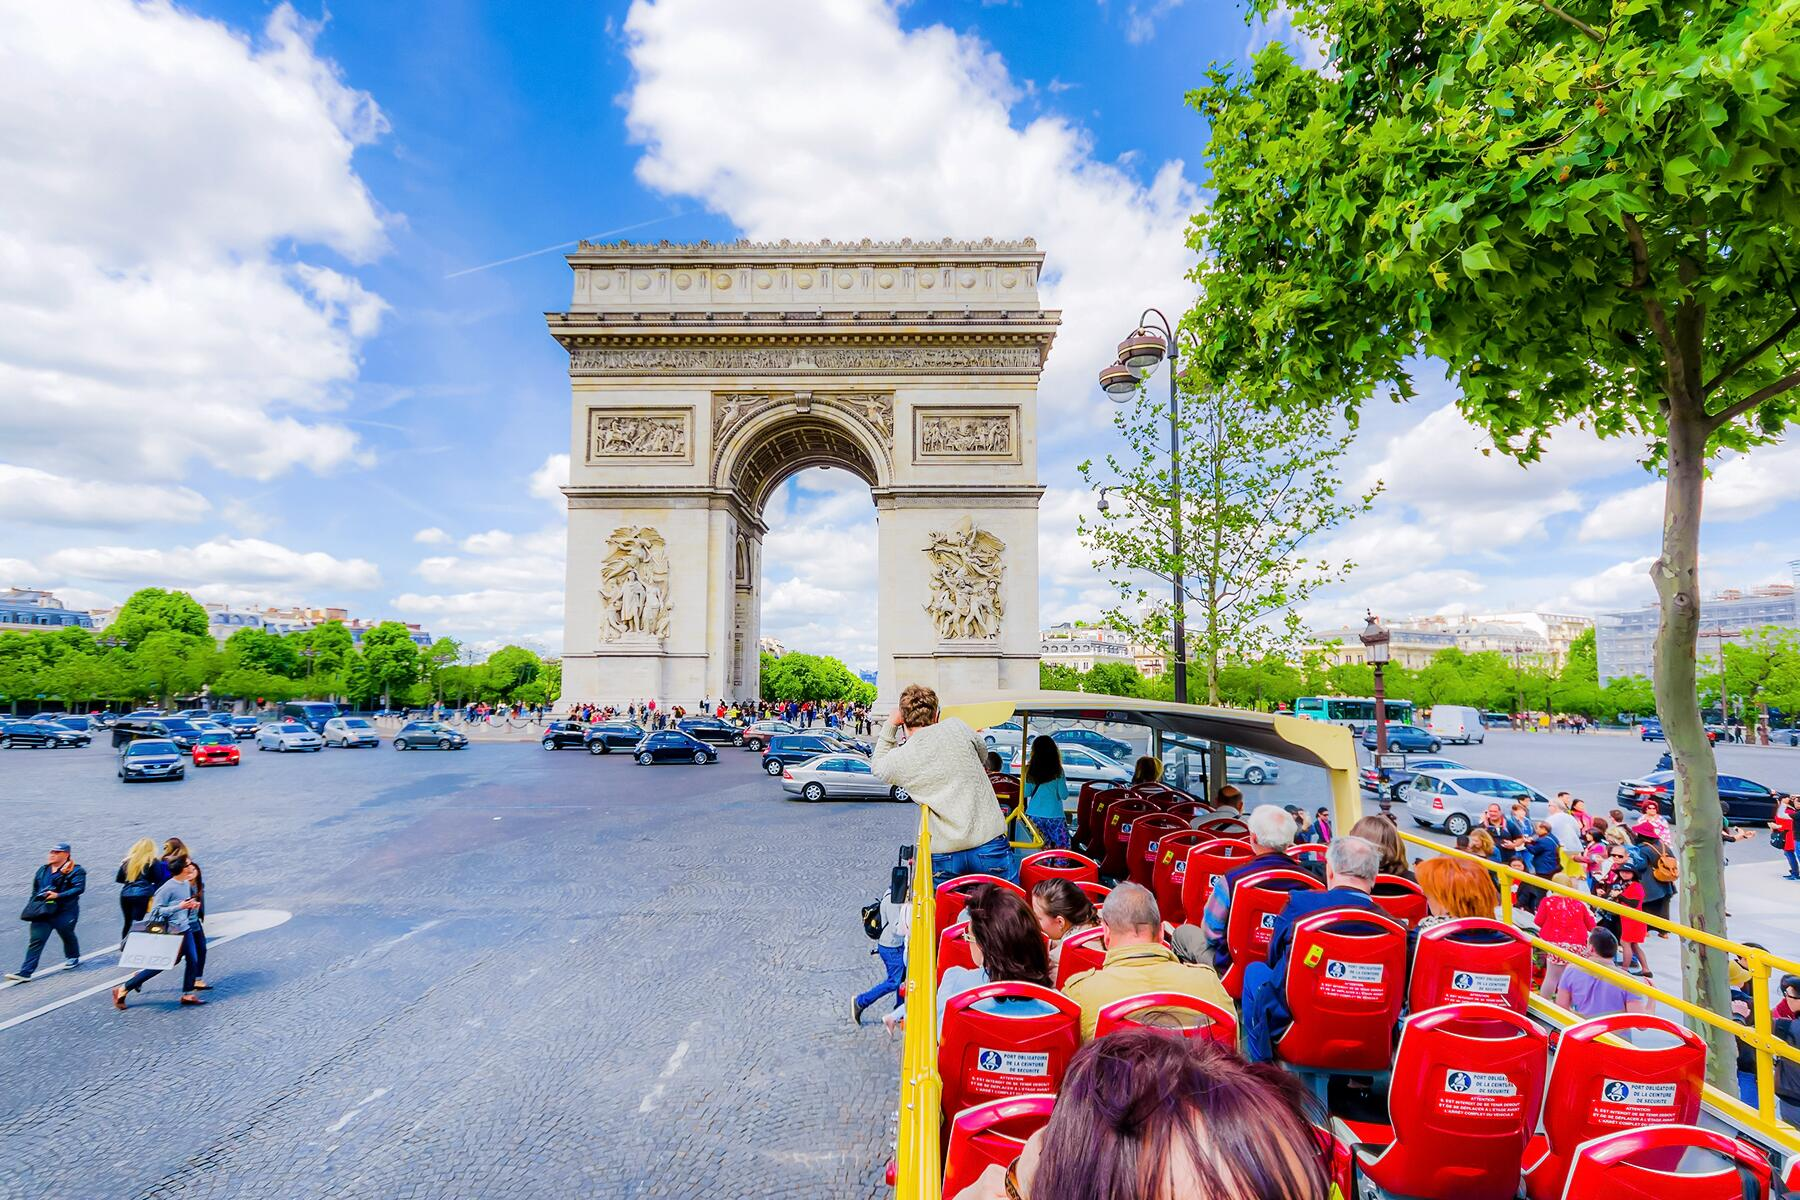 10 Things You Need to Know Before You Go to Paris